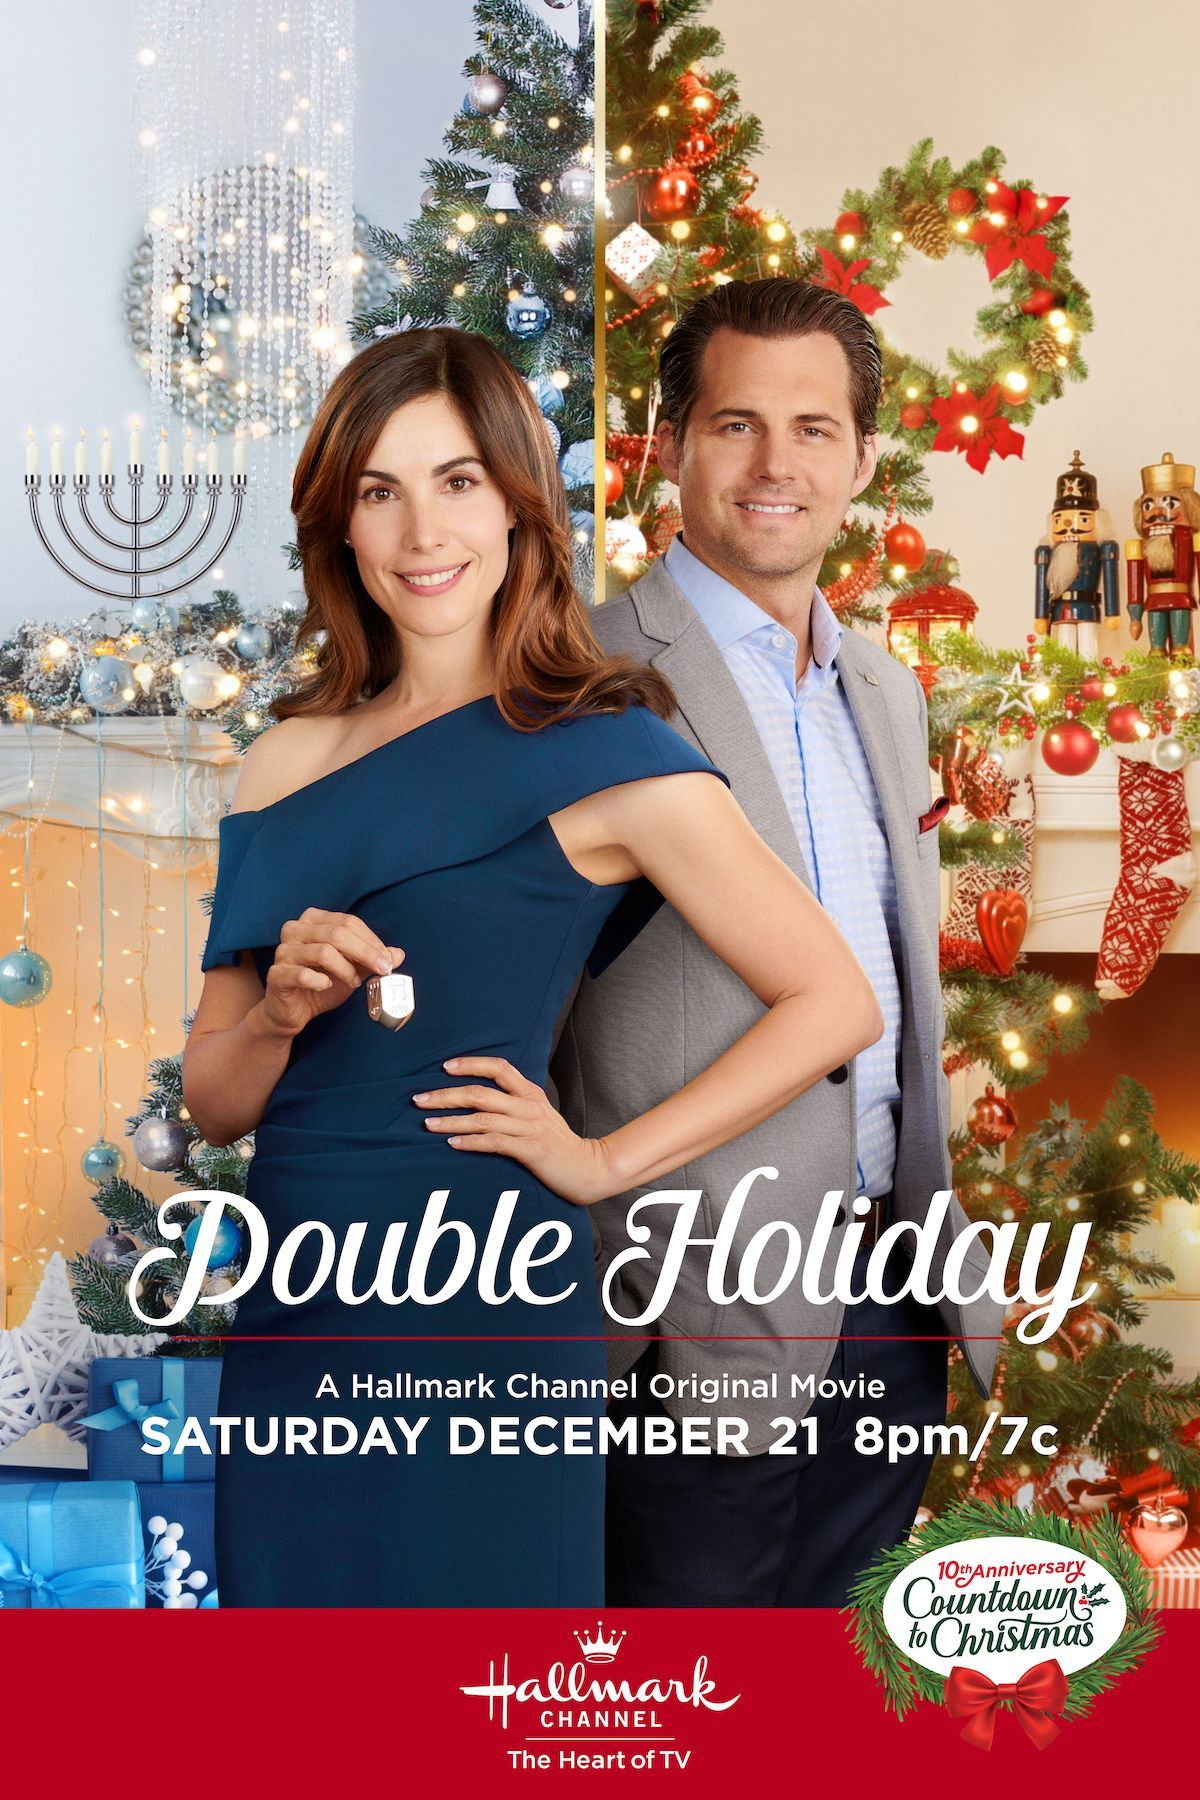 Double Holiday Celebrates Christmas And Hanukkah And Romance Carly Pope And Kristoffer Polaha Lead The Cast On December 21 Only In 2020 Christmas Movies On Tv Hallmark Christmas Movies Hallmark Channel